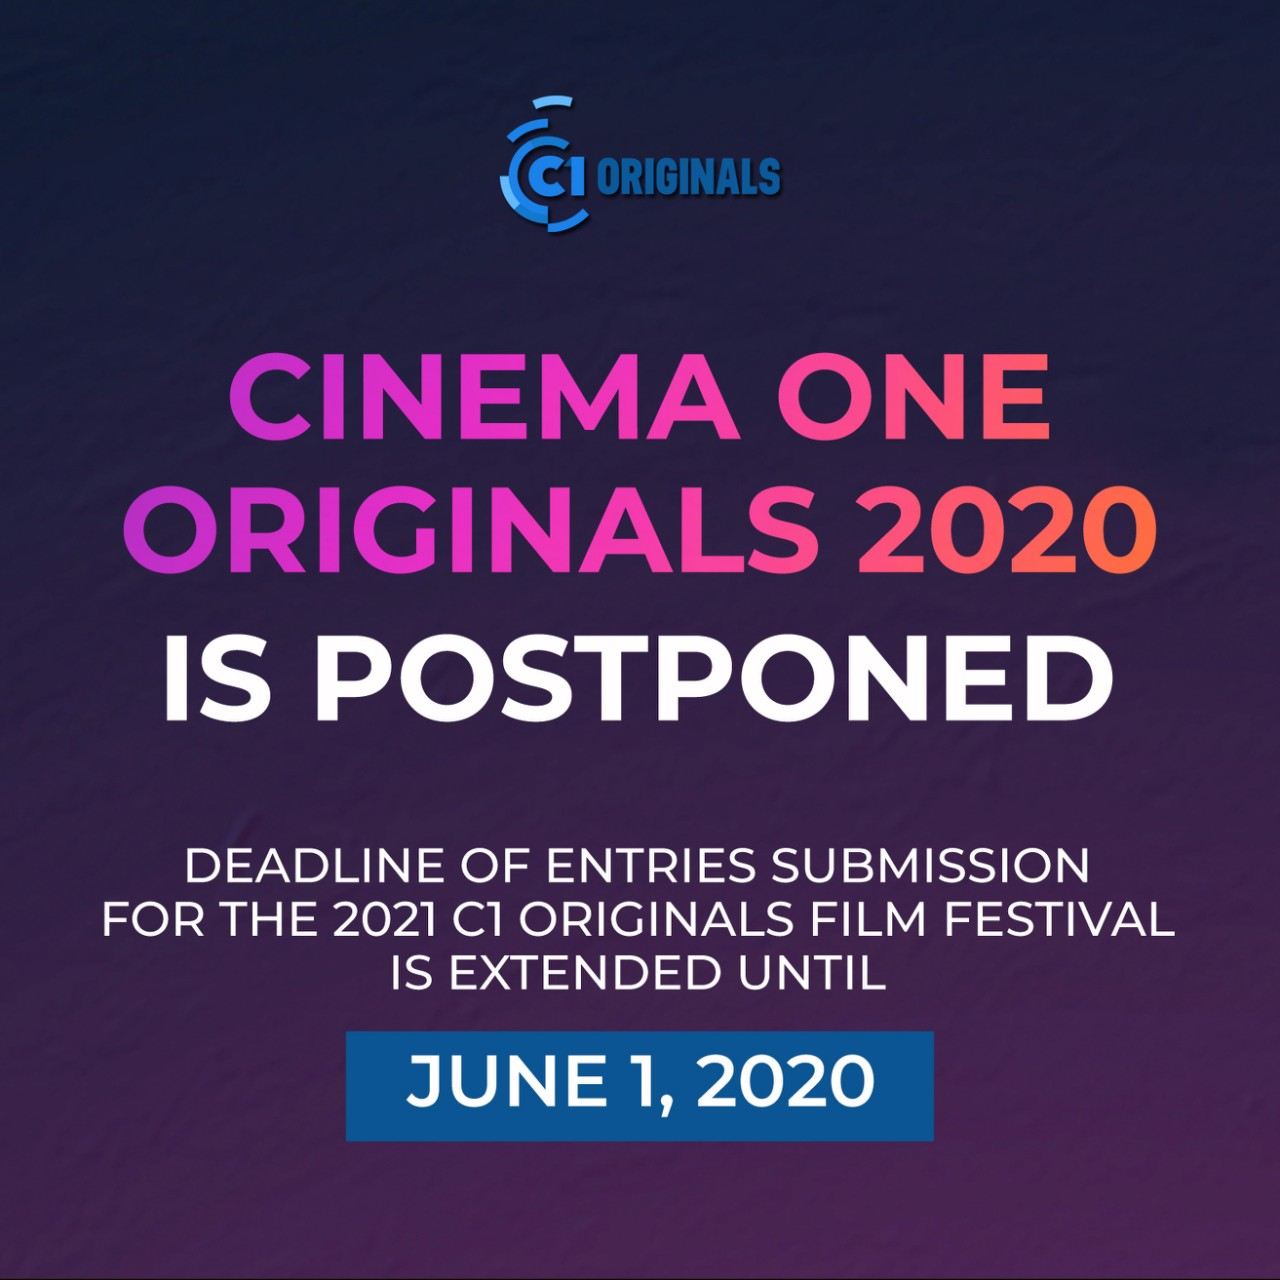 C1 ORIGINALS IS POSTPONED _ ENGLISH 1